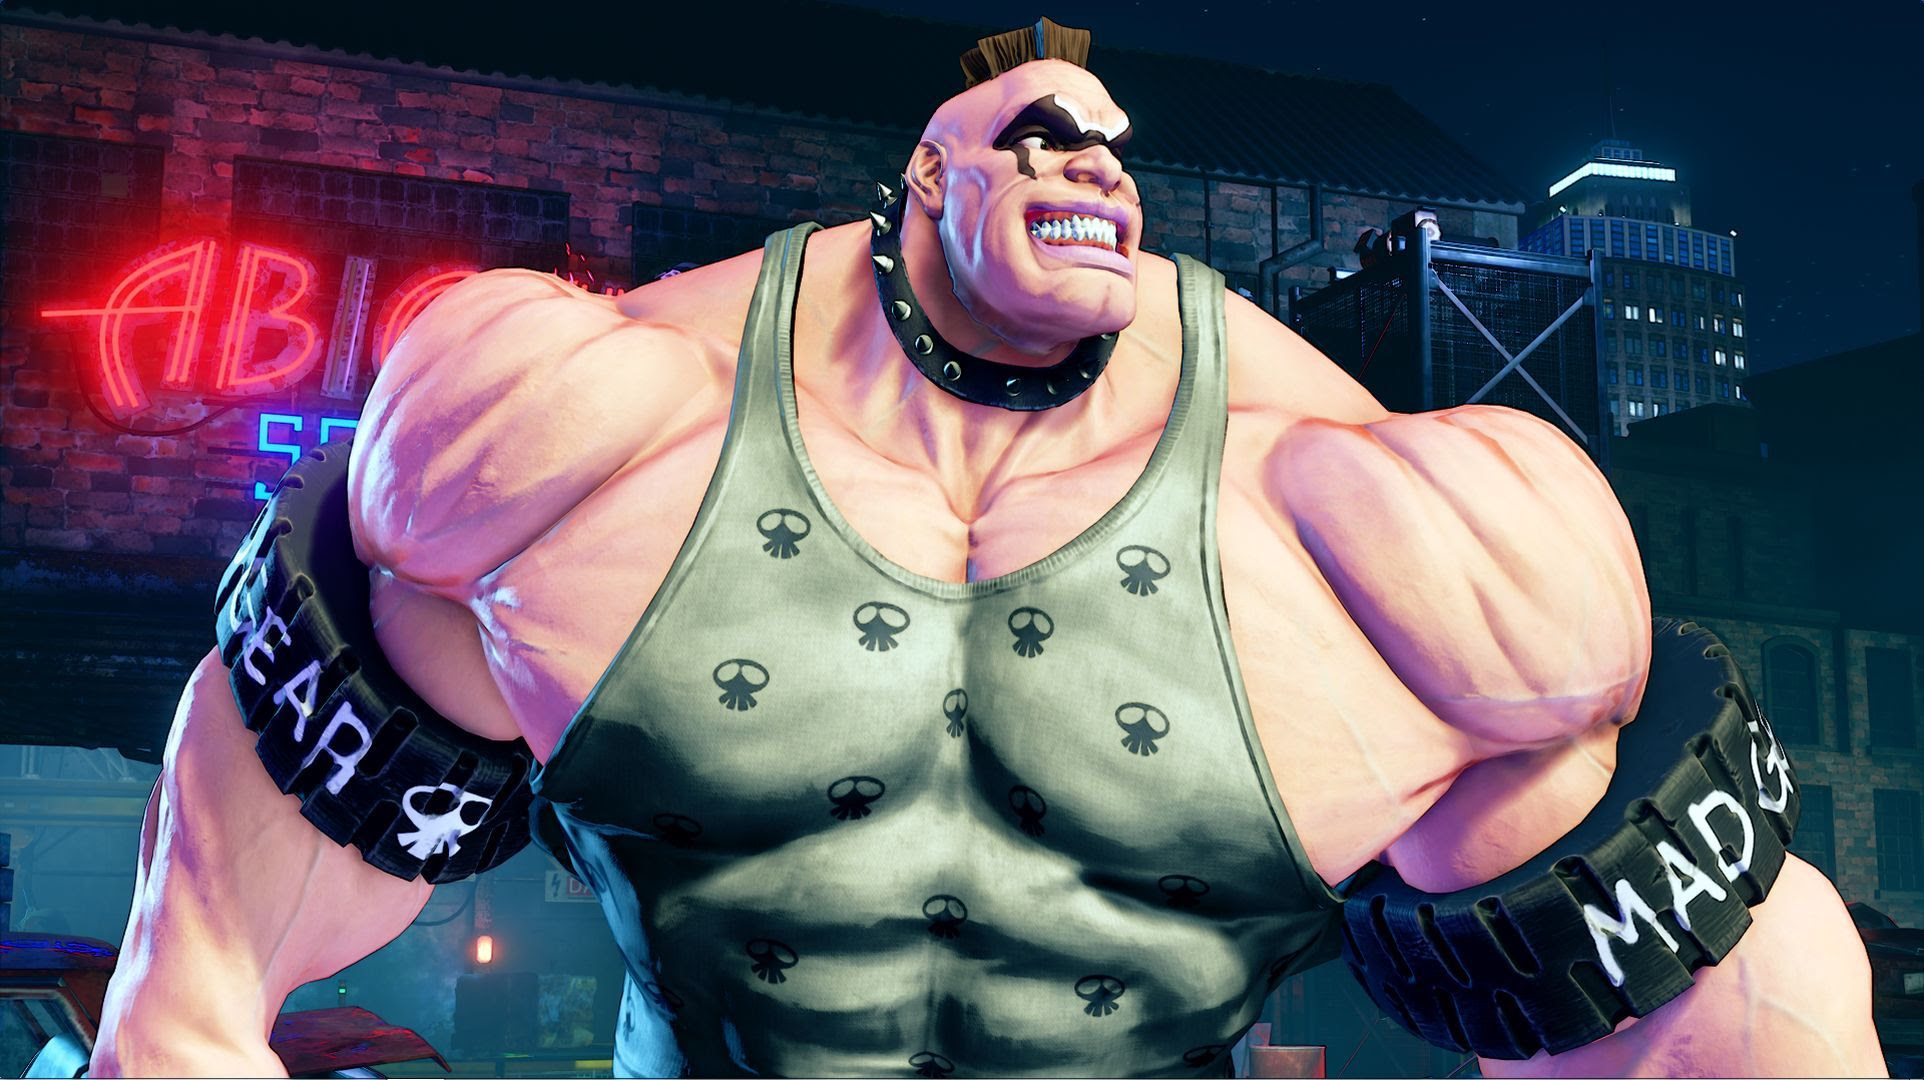 Abigail may look ugly, but he seems to have a lot of potential in Street Fighter V screenshot